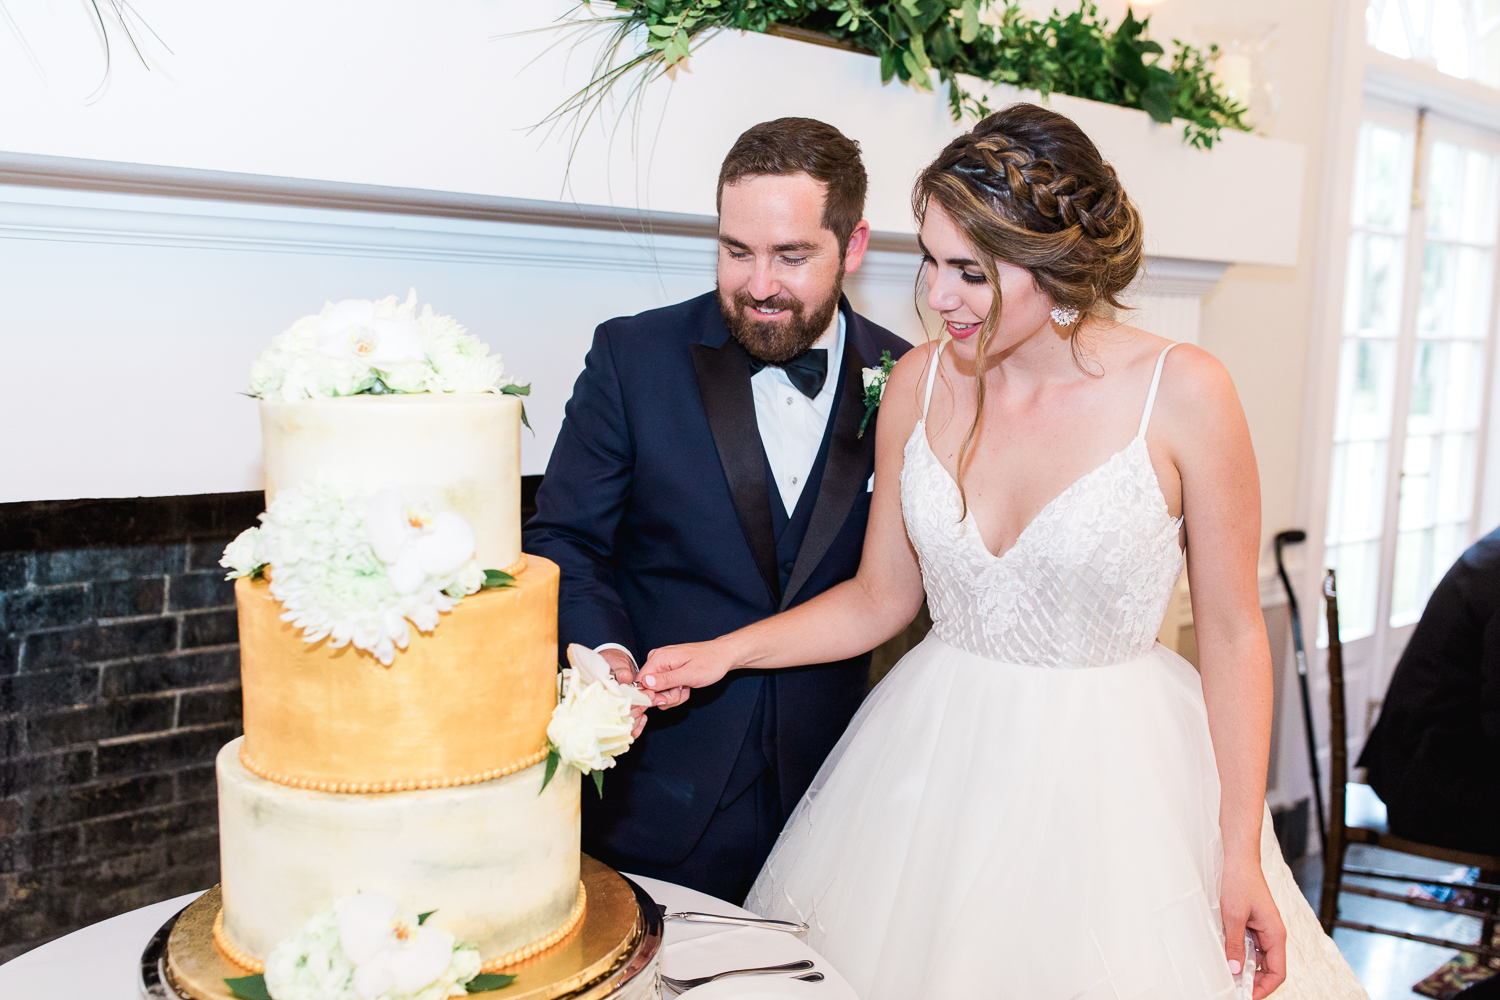 cake cutting pictures